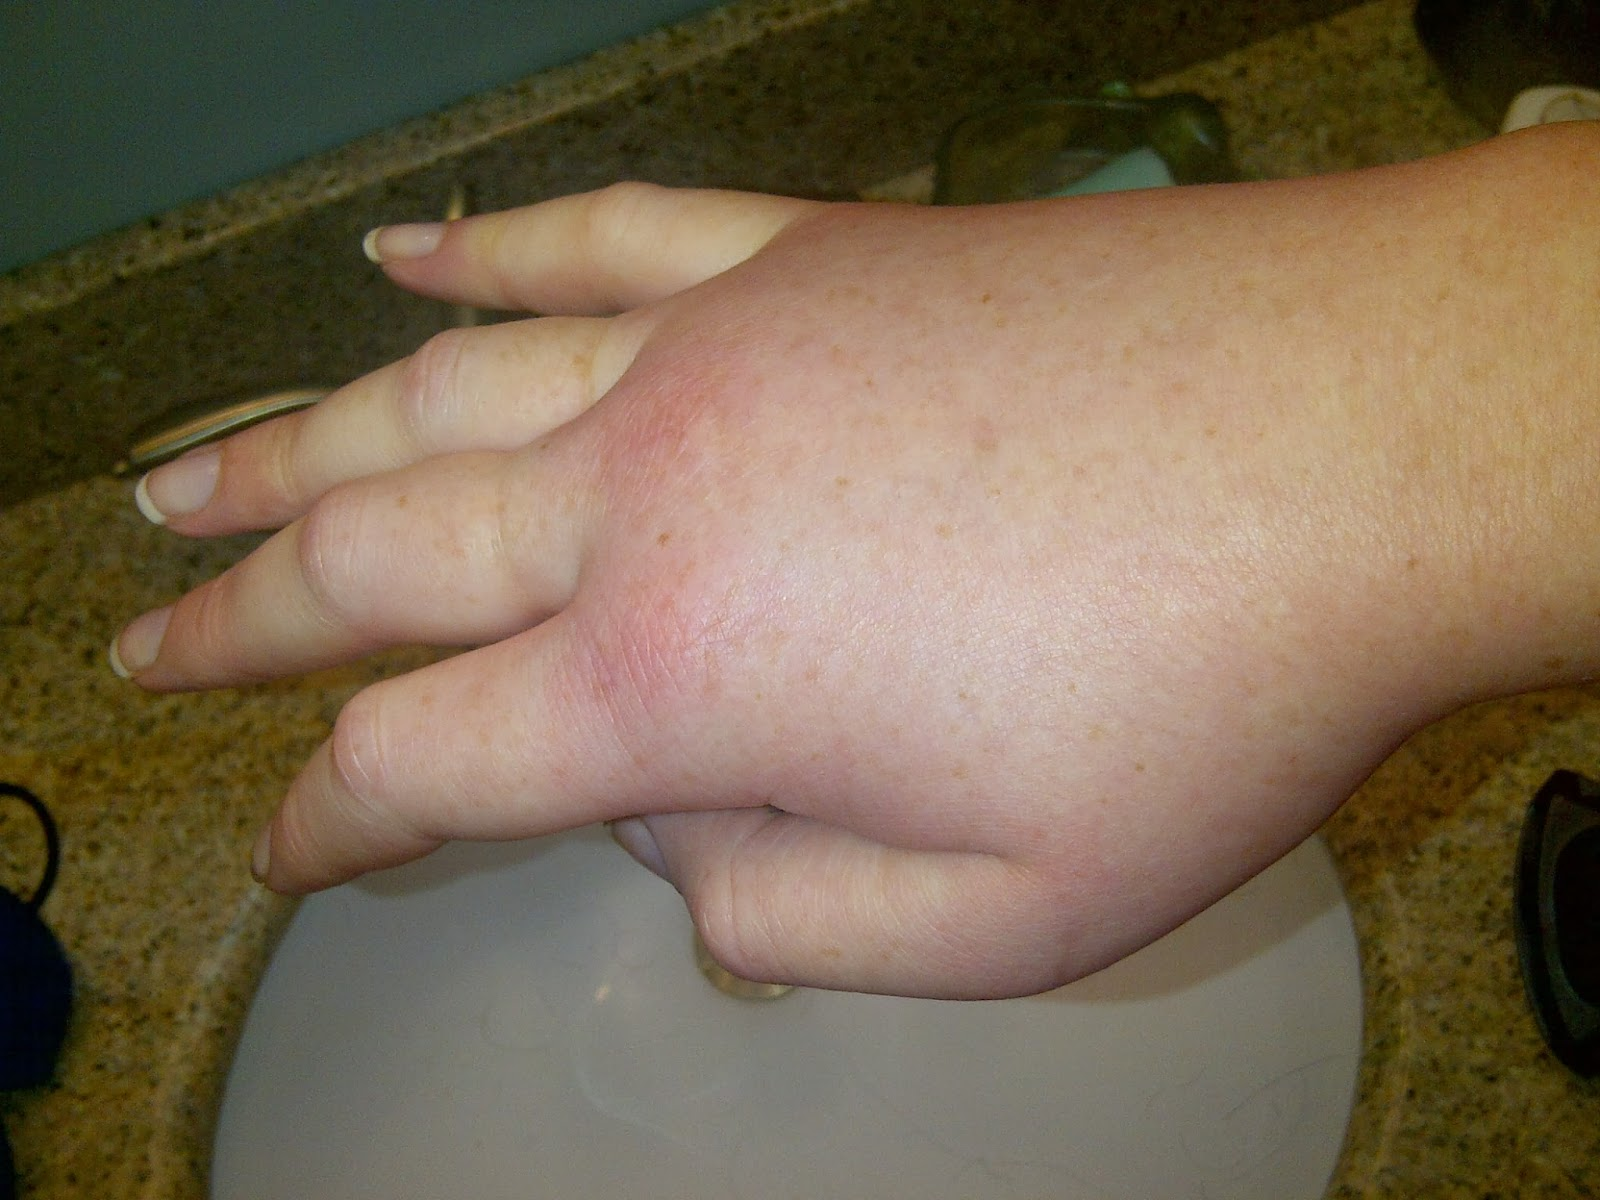 Are swollen fingers a cause for alarm?